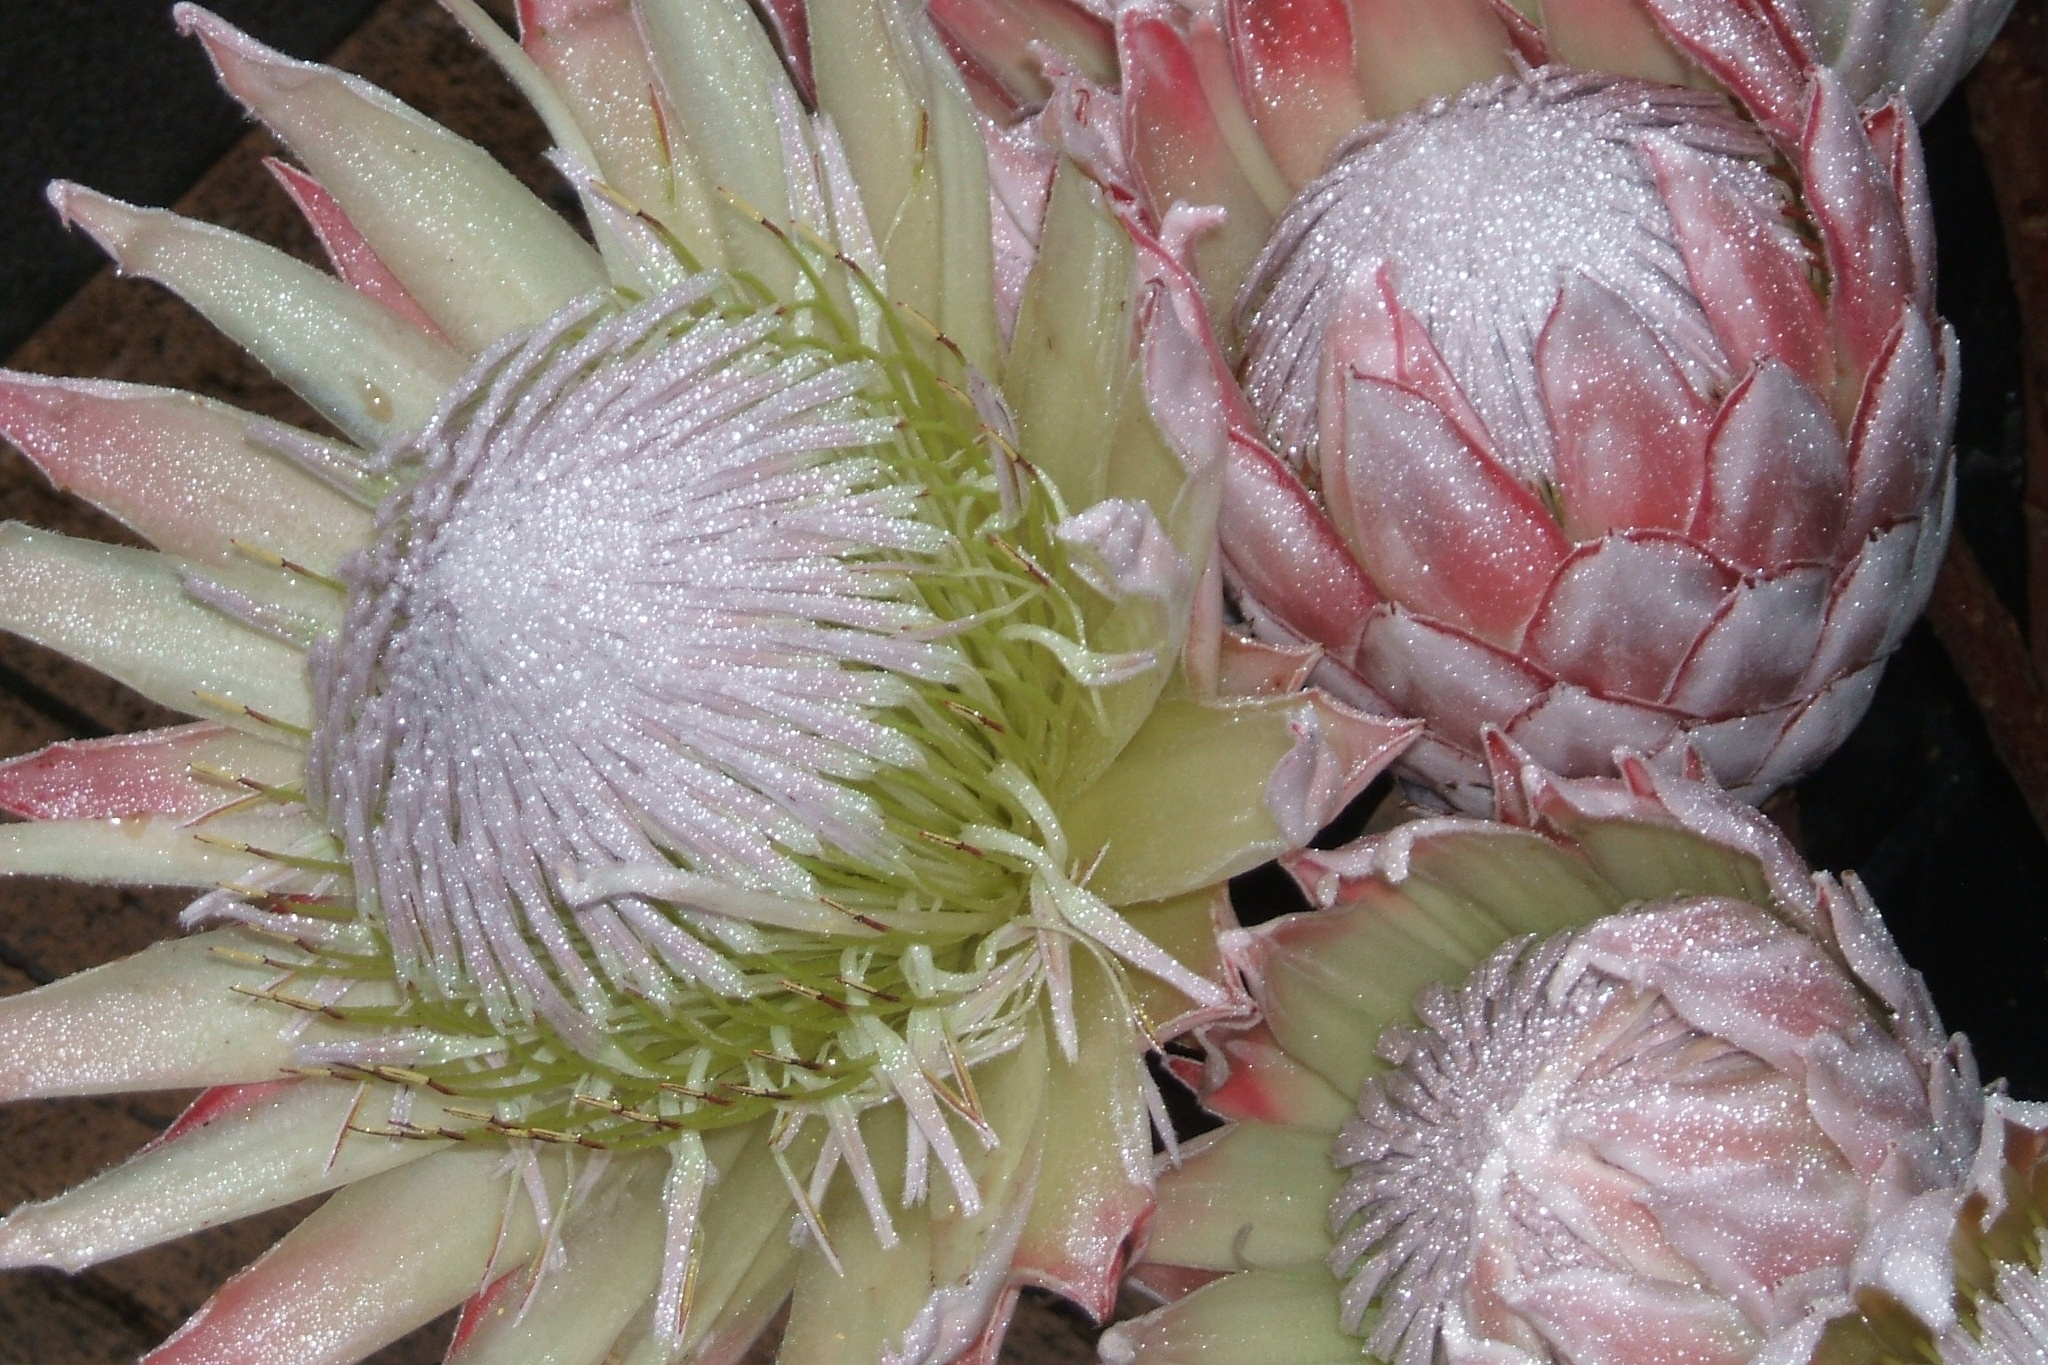 Protea - Native to South Africa by maria.telegdy